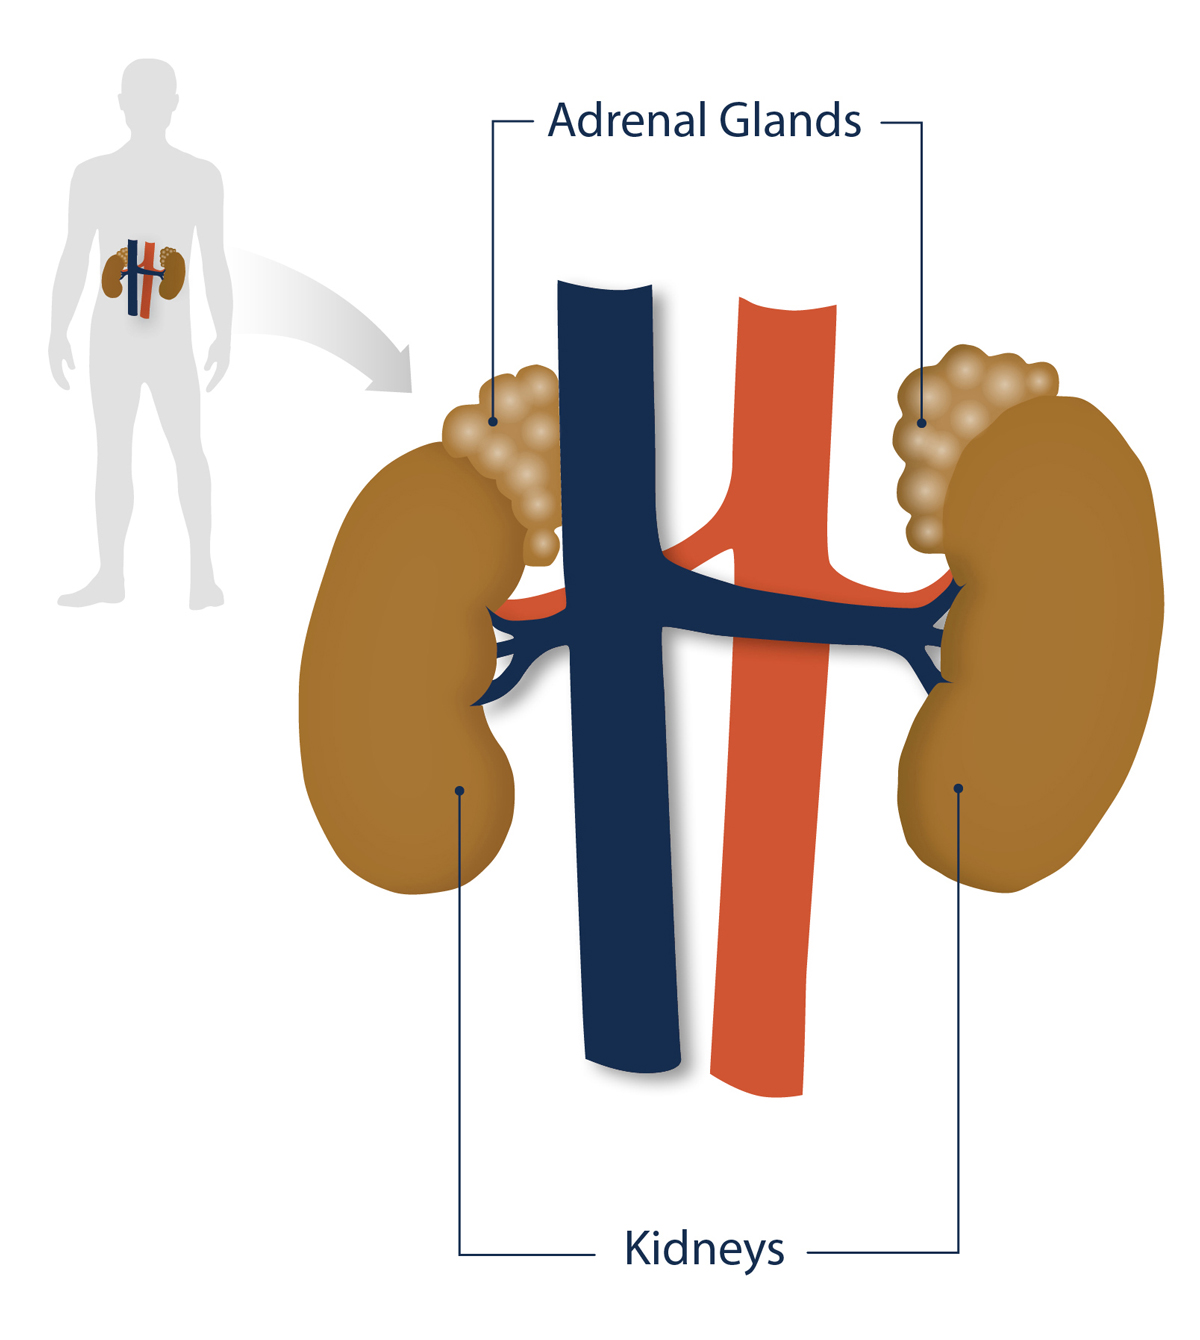 Position of the adrenal glands and kidneys in the human body